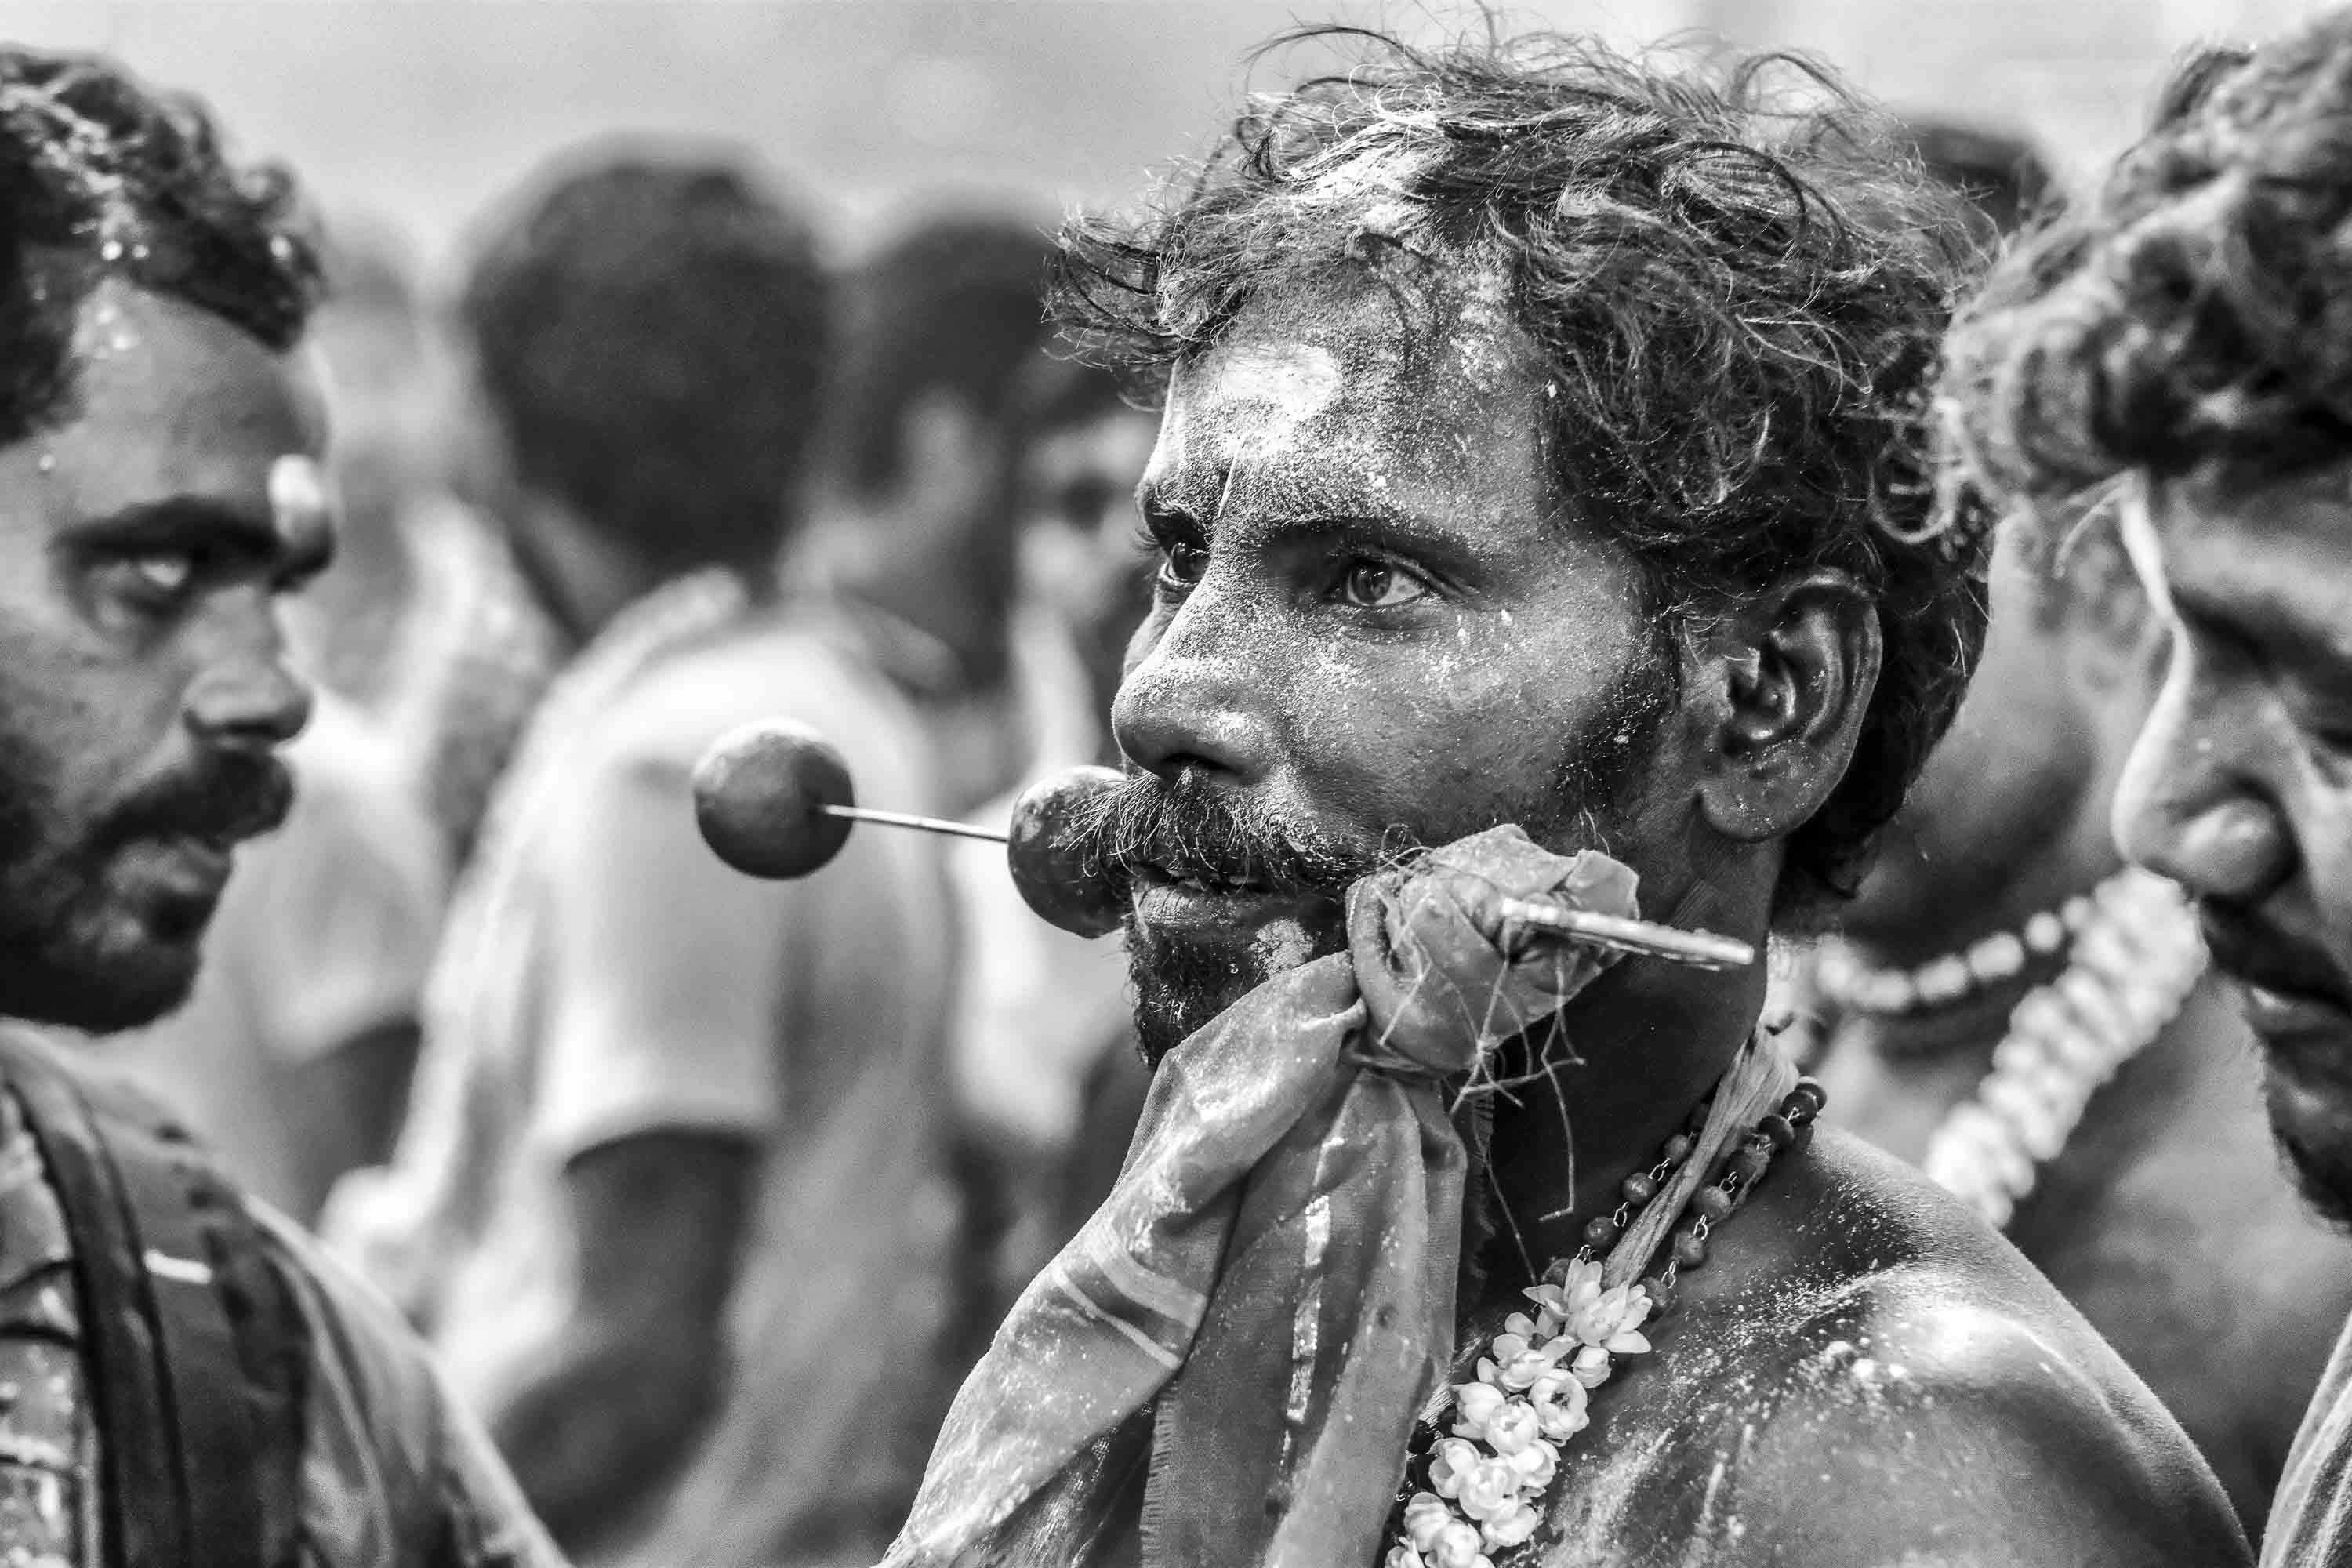 piercing tongue brochette black and white Little India Thaipusam Festival hindu Singapore photography jose jeuland documentary event